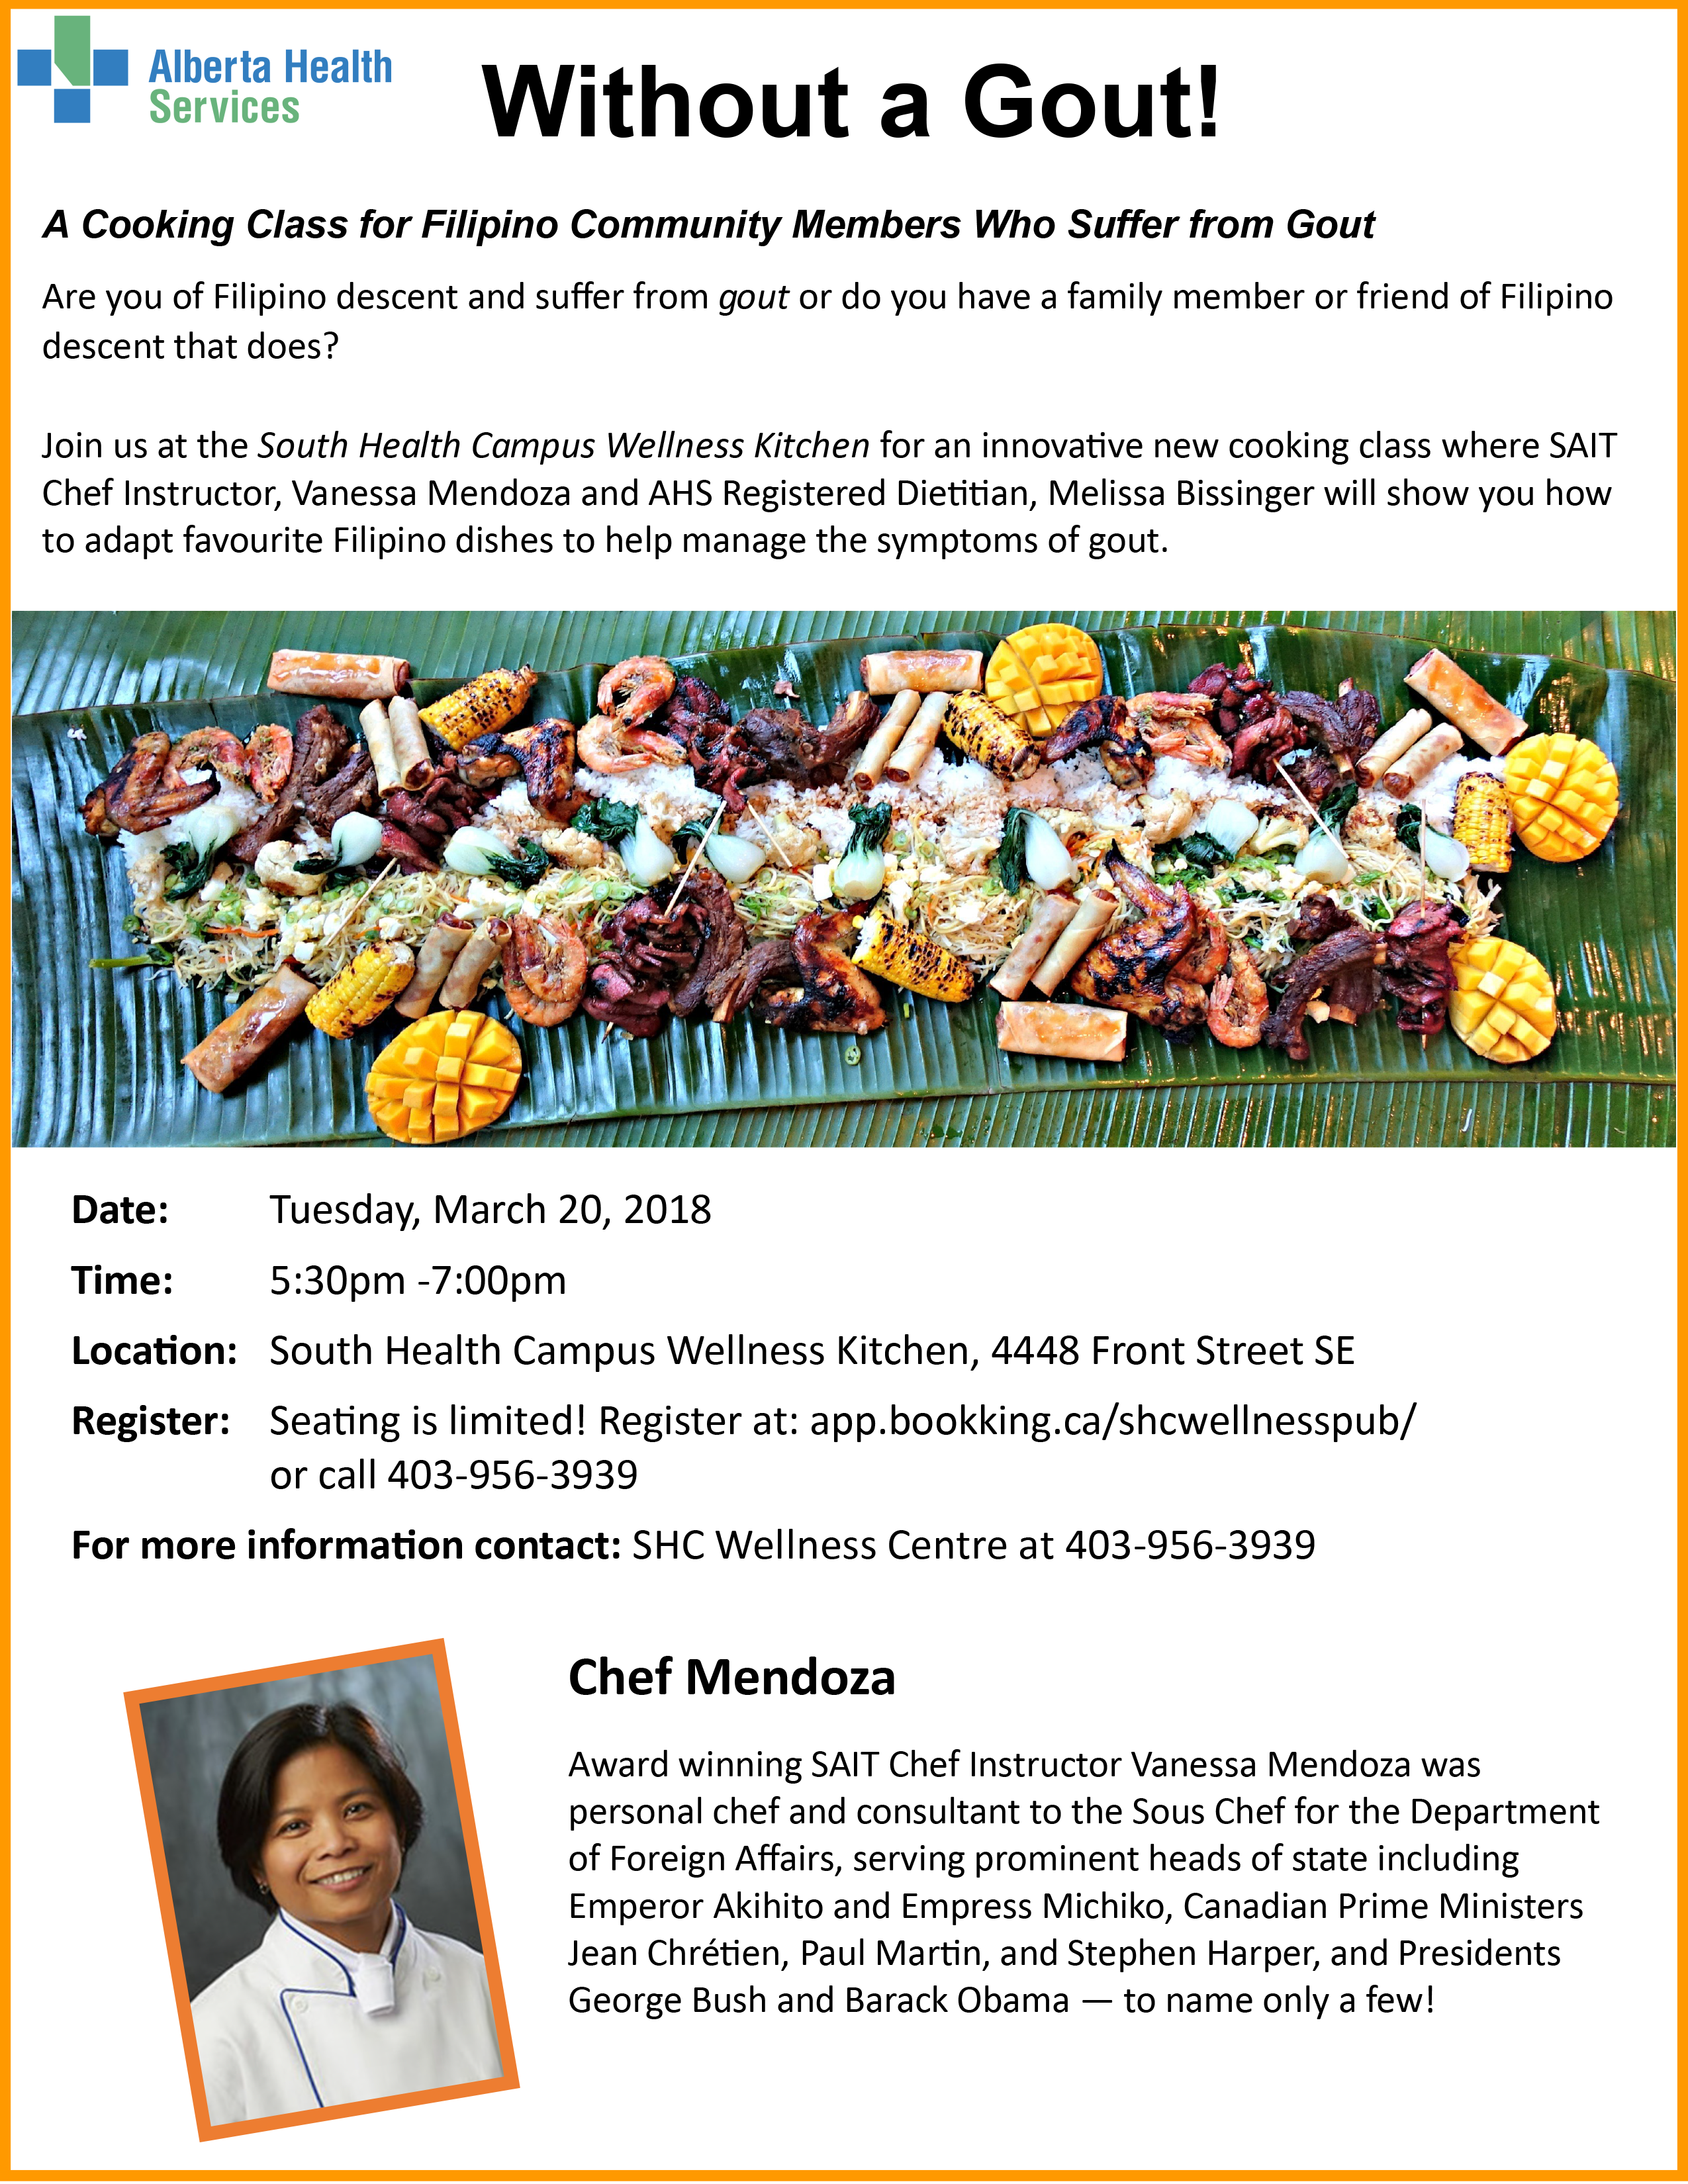 Learn To Eat Without A Gout Mabuhay News Calgary